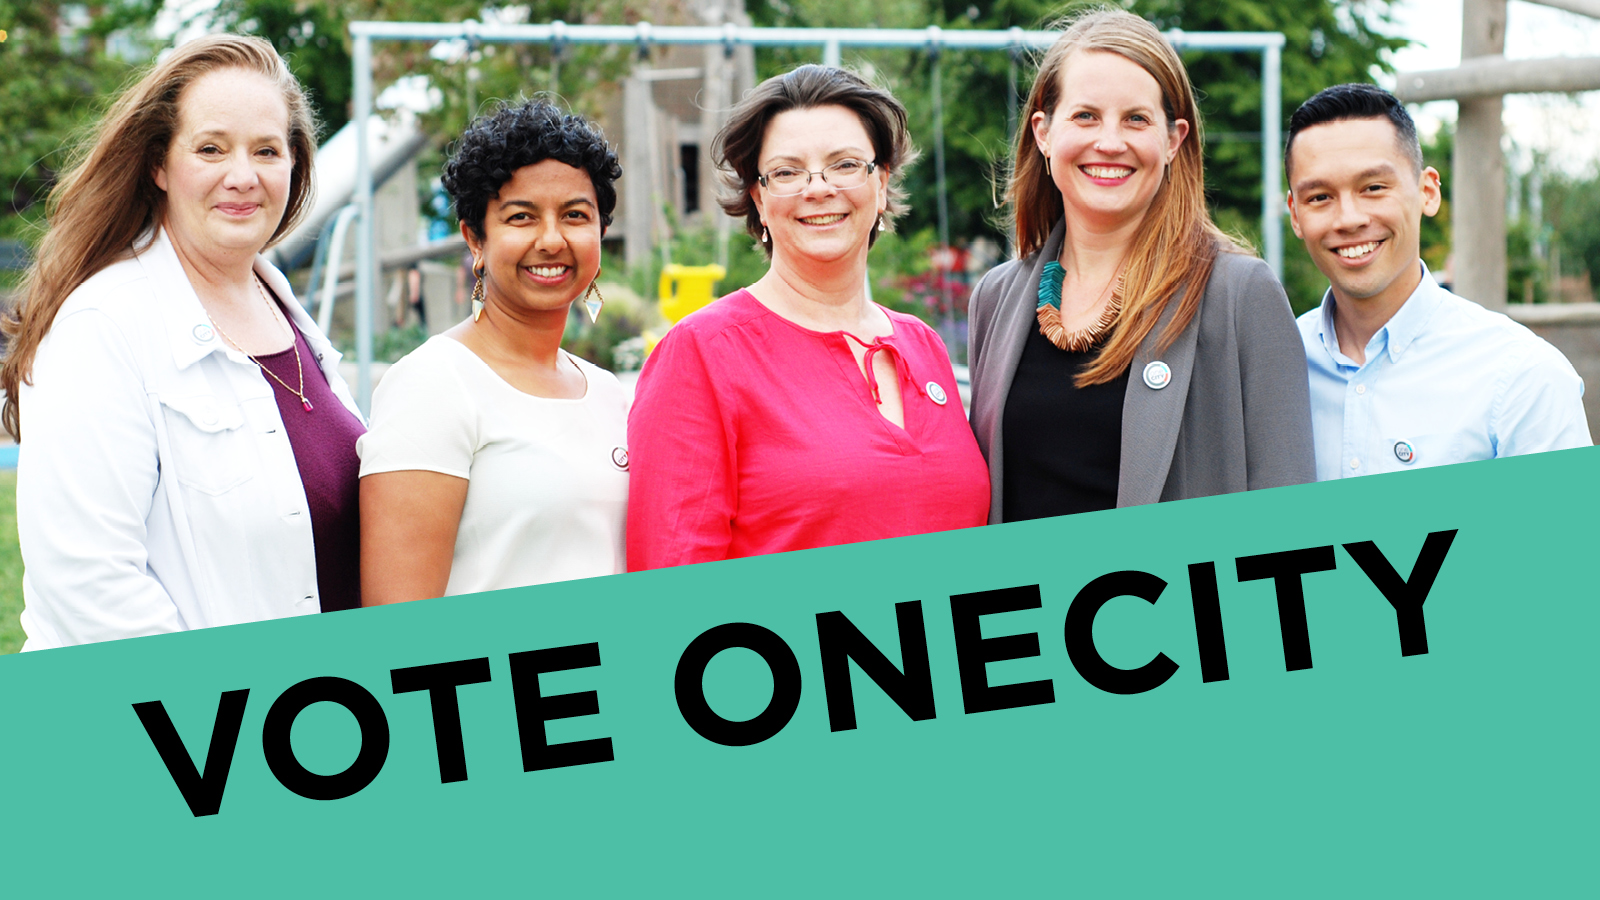 Carrie Bercic, Jennifer Reddy, Erica Jaaf, Christine Boyle, Brandon Yan standing and smiling with text Vote OneCity